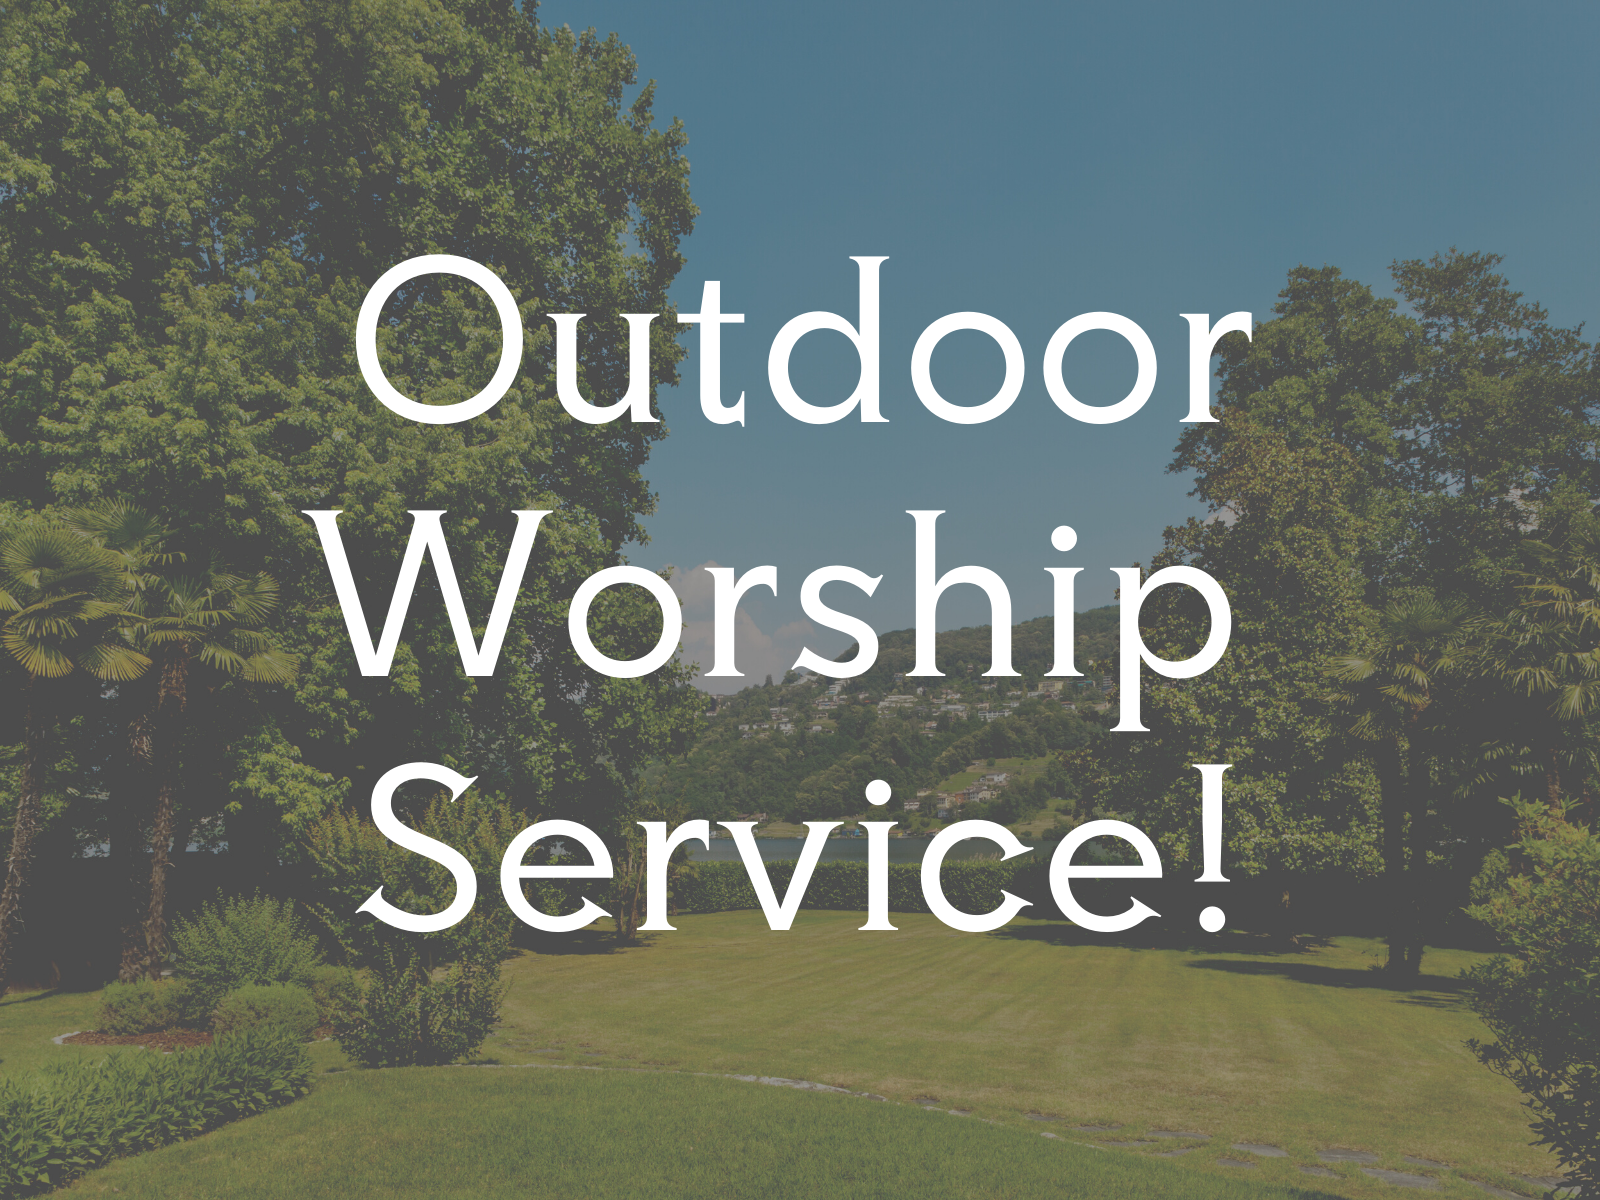 Outdoor Worship Service WL